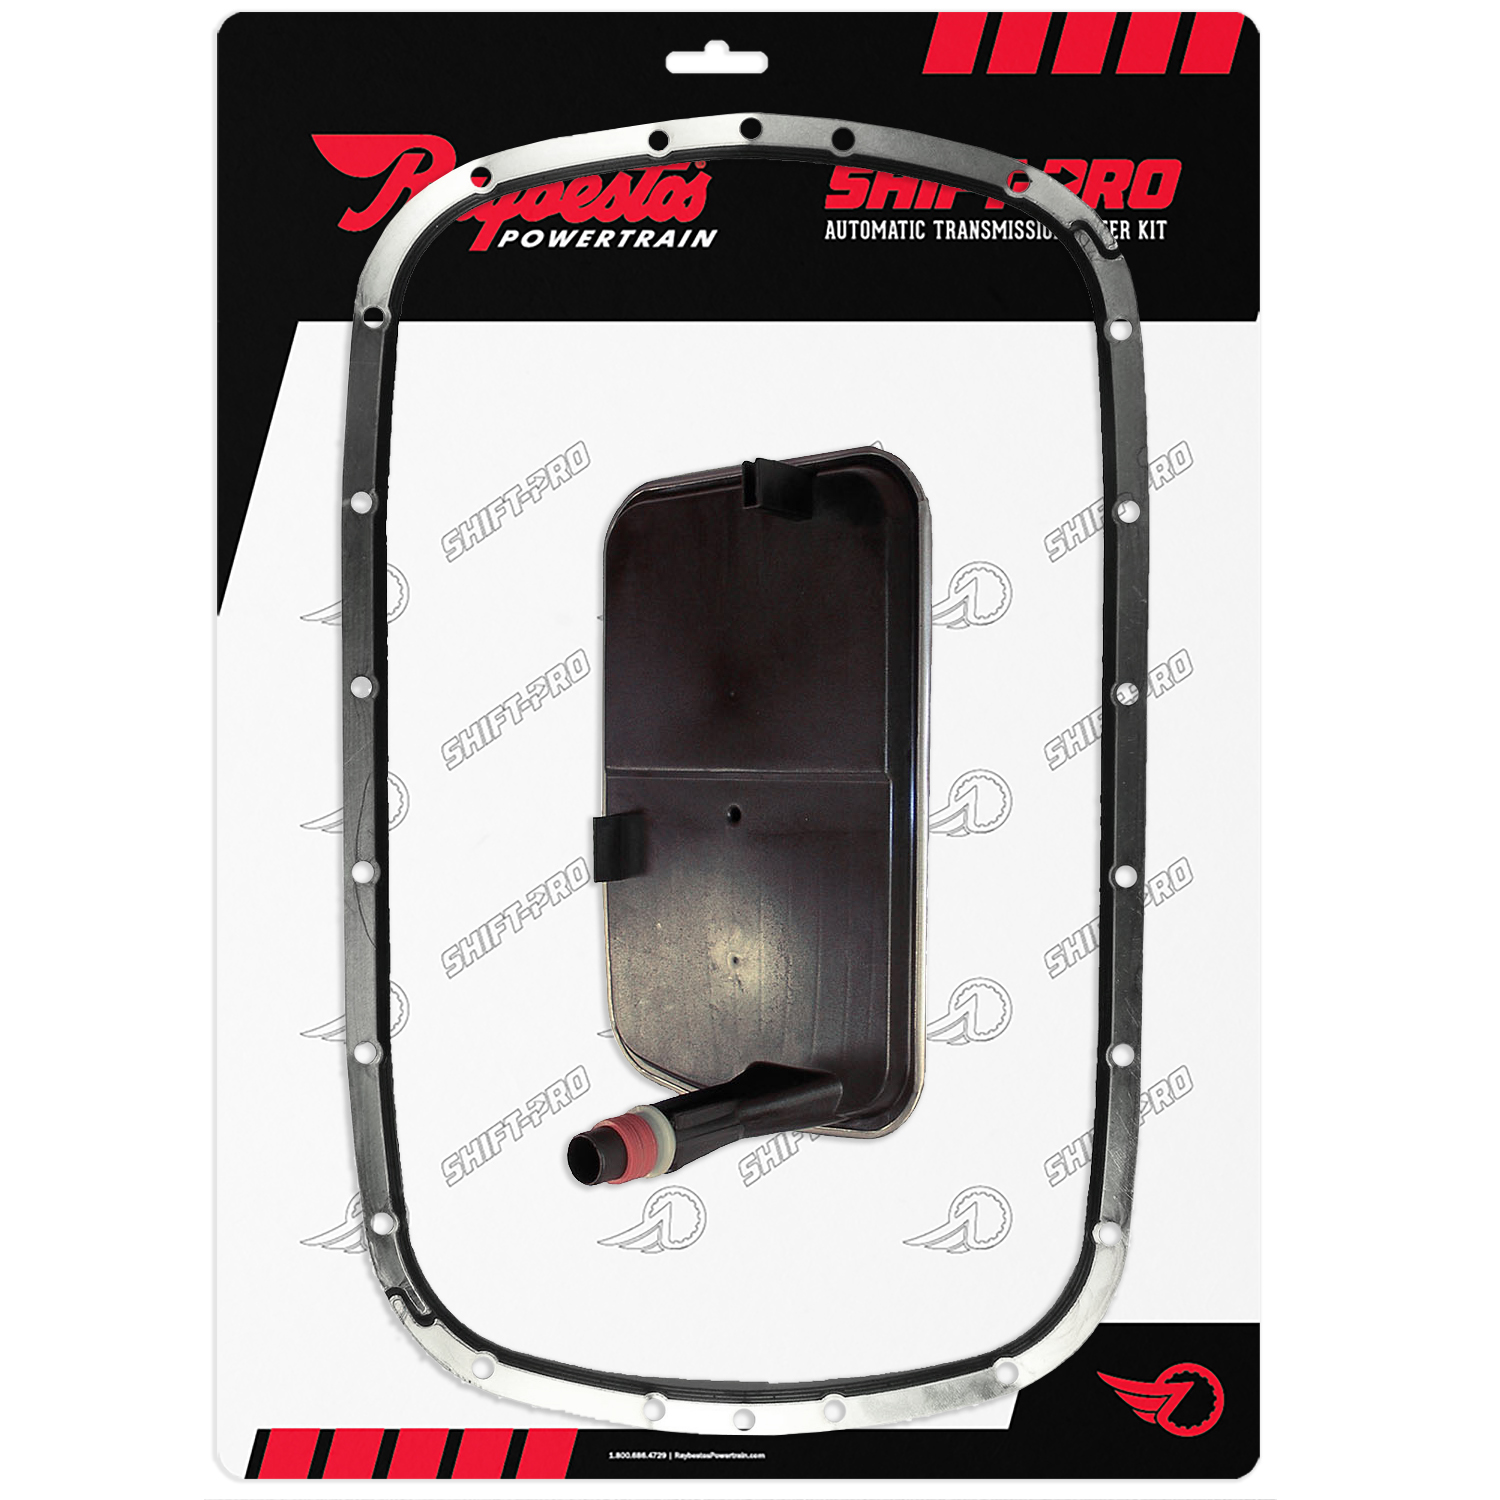 997978 | 1999-ON Shift-Pro Automatic Transmission Filter Kit